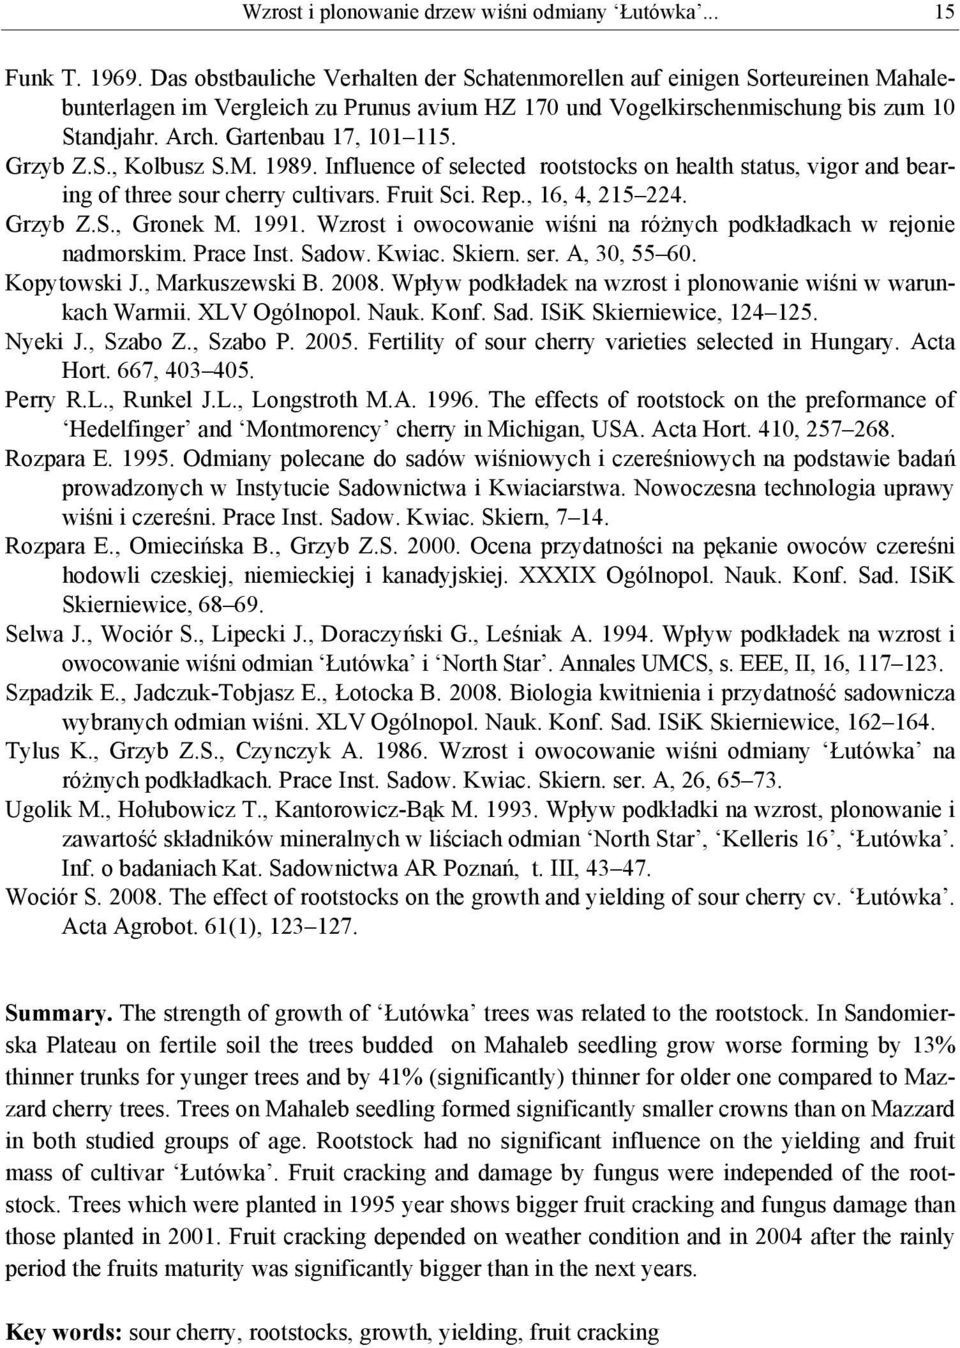 Gartenbau 17, 101 115. Grzyb Z.S., Kolbusz S.M. 1989. Influence of selected rootstocks on health status, vigor and bearing of three sour cherry cultivars. Fruit Sci. Rep., 16, 4, 215 224. Grzyb Z.S., Gronek M.